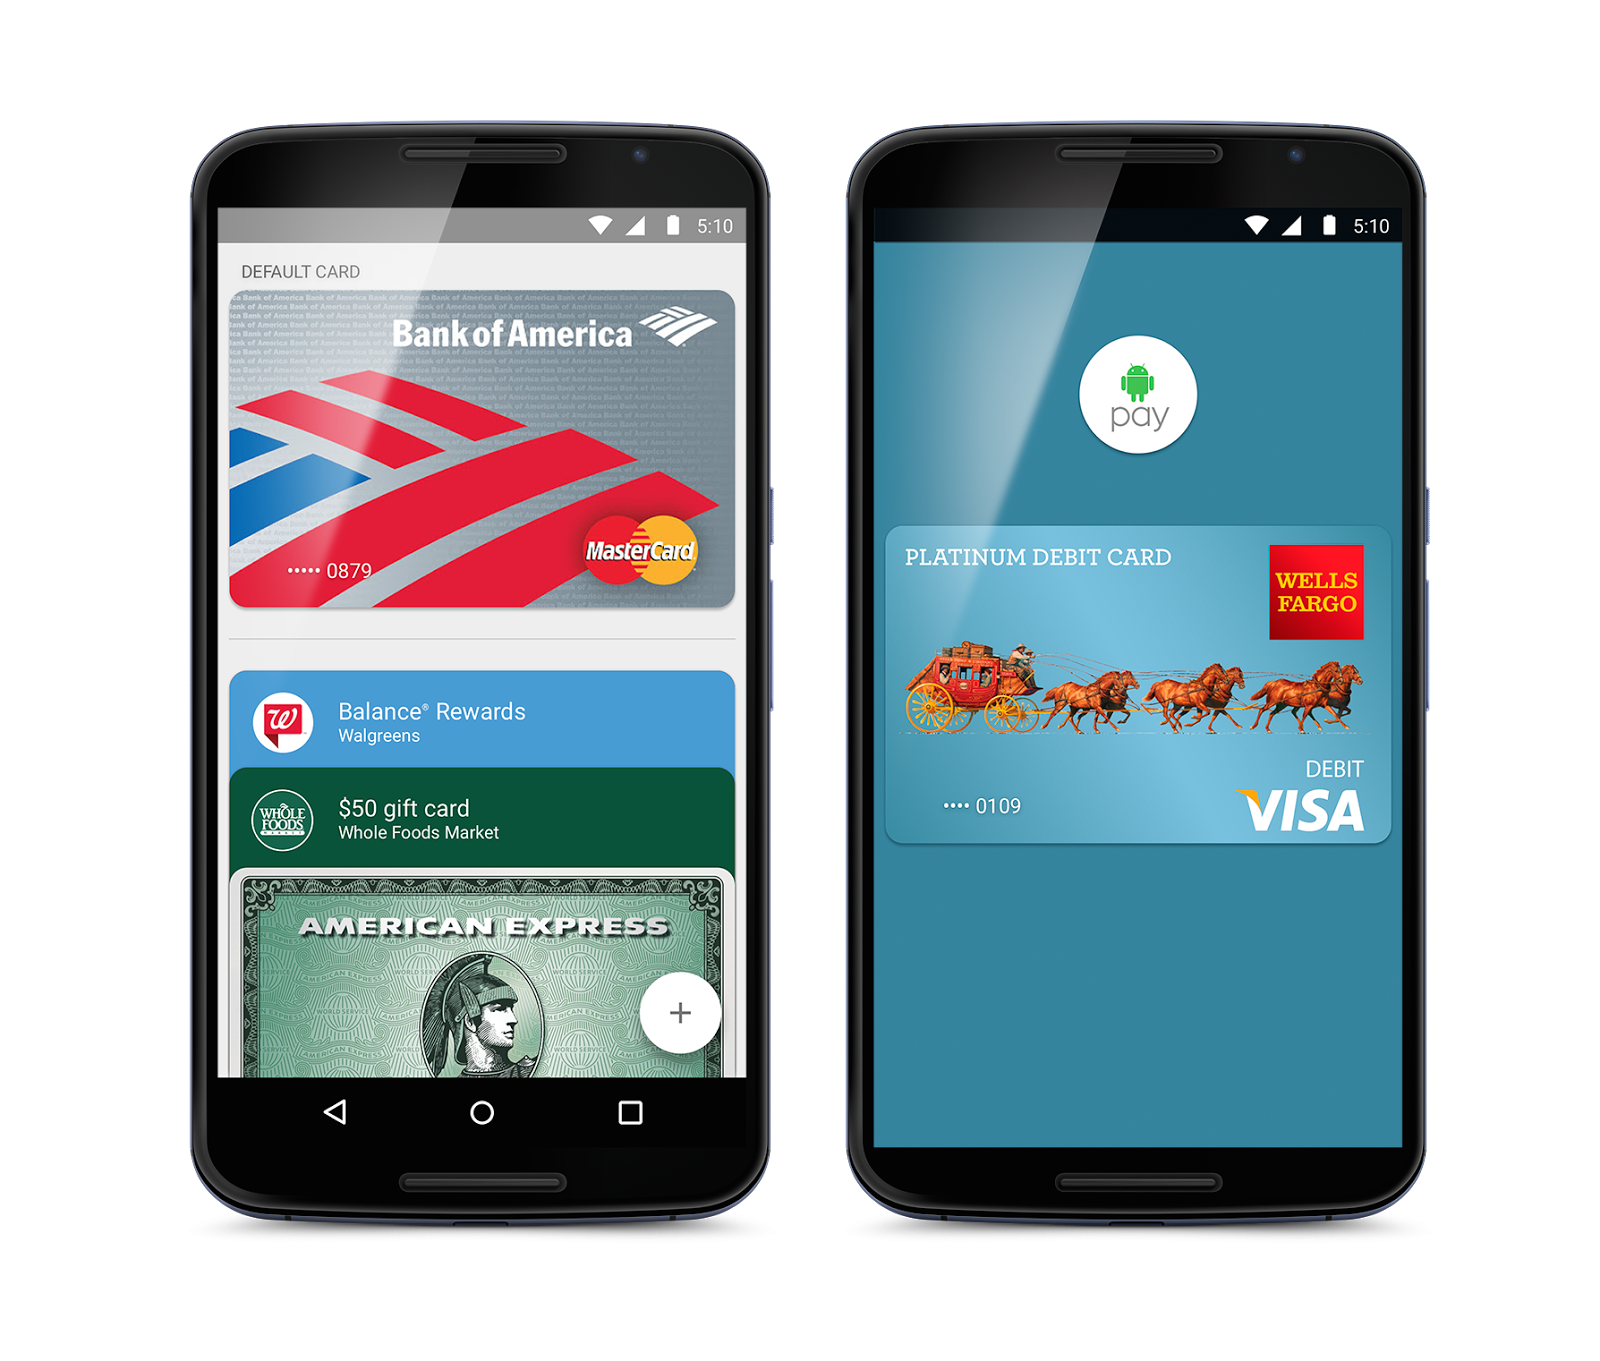 australia-welcomes-android-pay-despite-apple-pay-snub-2-image-cultofandroidcomwp-contentuploads201509Android-Pay-png